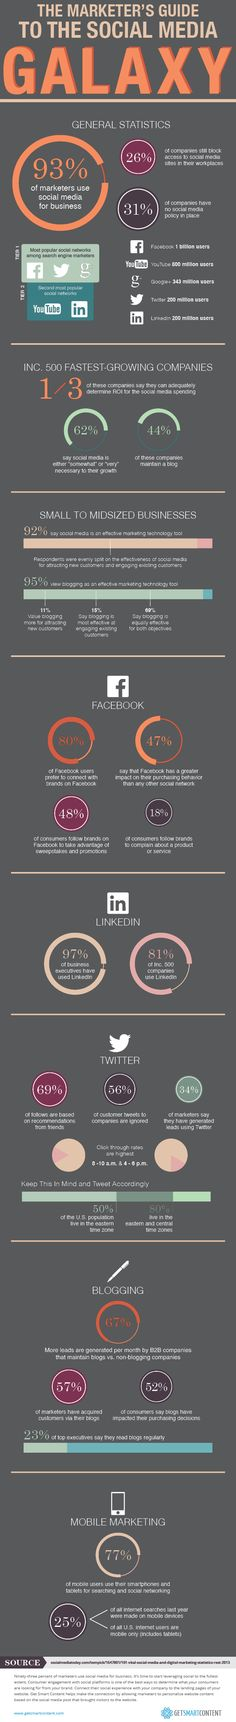 Marketers, Find Your Way Through Social Media [infographic] | WeRSM | We Are Social Media